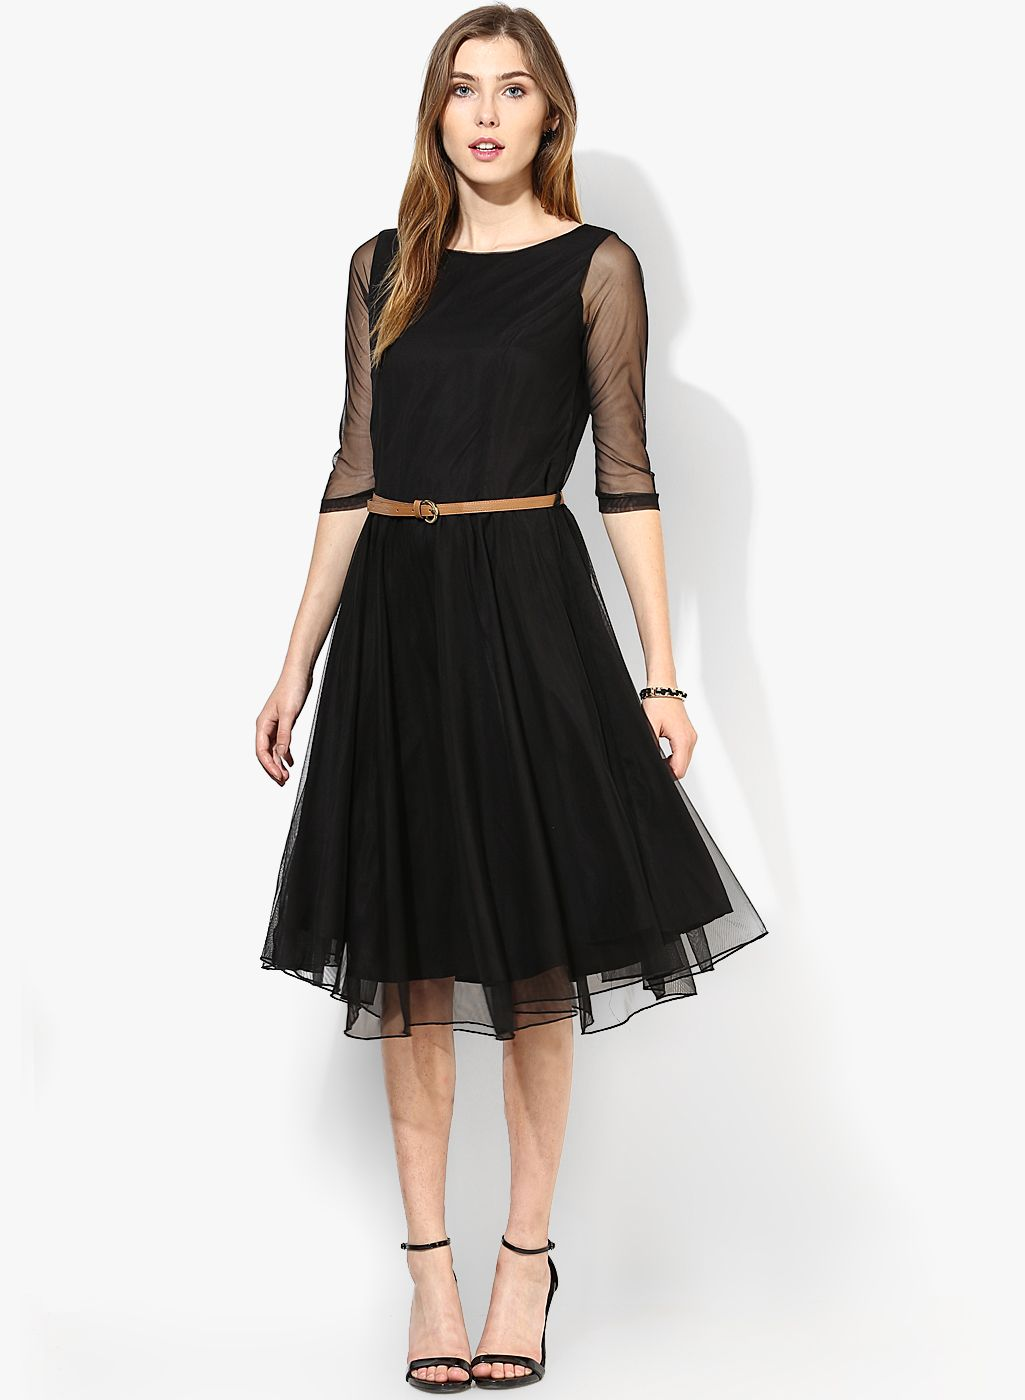 446e7b74d9 Buy MIAMINX Black Colored Solid Skater Dress for Women Online India, Best  Prices, Reviews | MI863WA19LAMINDFAS